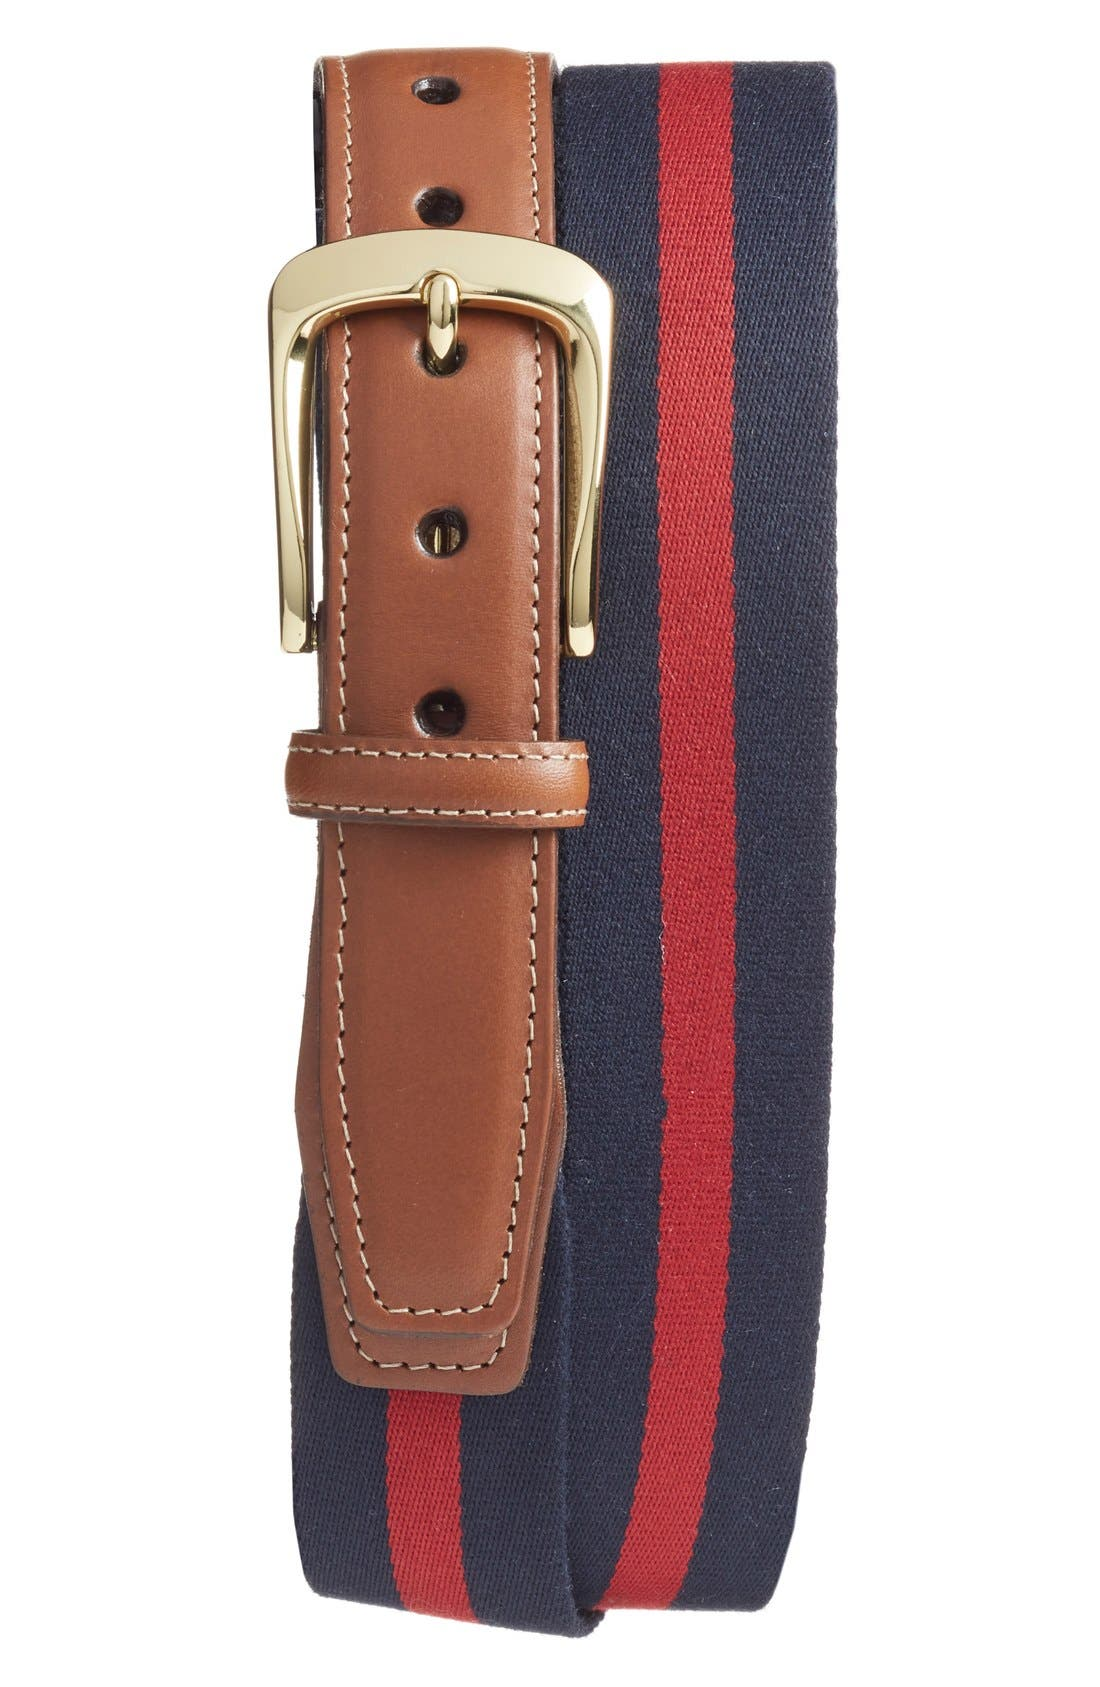 Contrast topstitching and a polished brass buckle add style to a striking surcingle belt that pairs ribbed canvas with supple calfskin leather tabs. Style Name: Torino European Surcingle Belt. Style Number: 5165937. Available in stores.